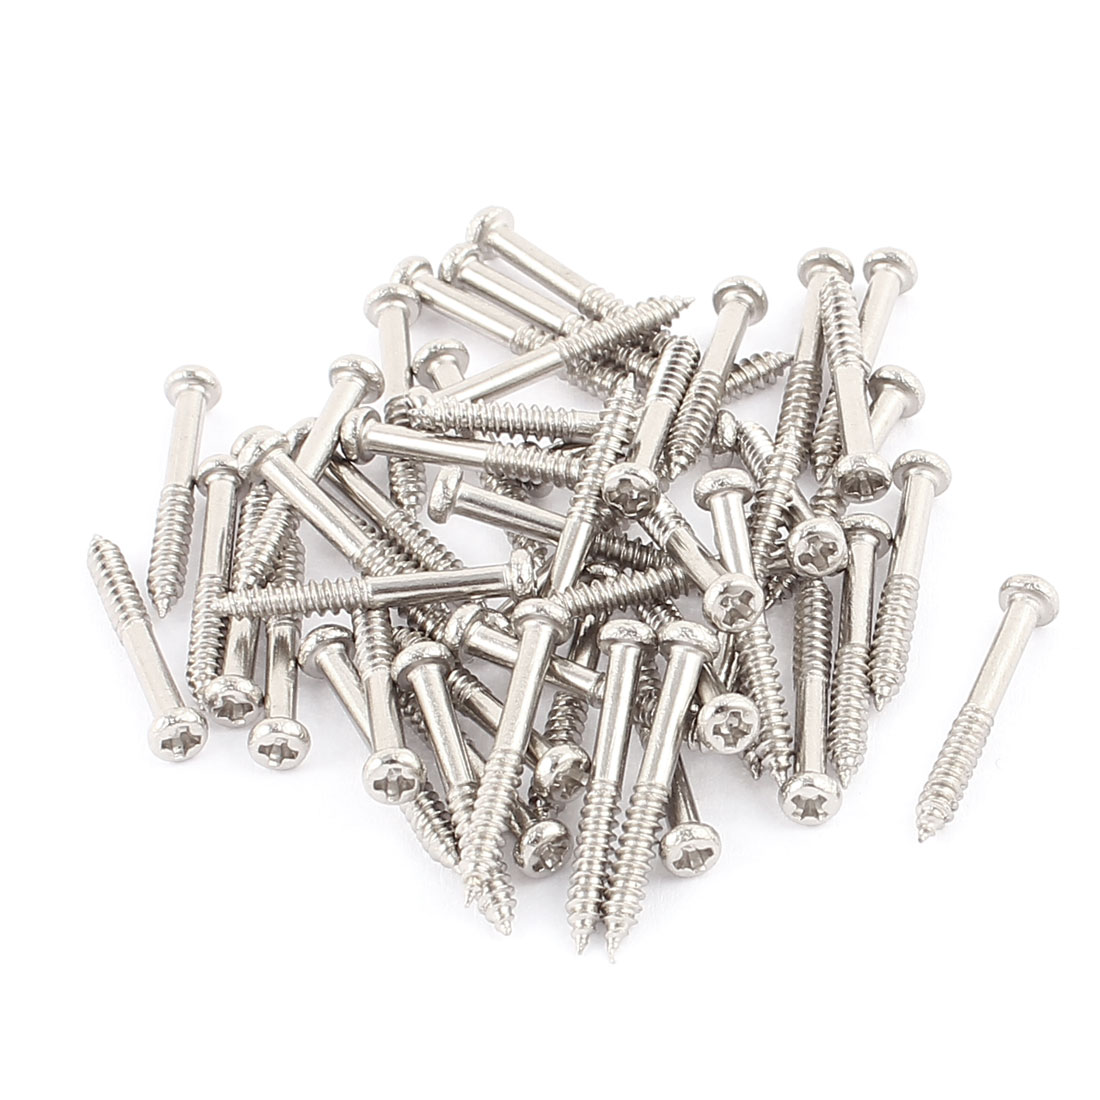 50 Pcs M2x18mm Stainless Steel Phillips Round Head Self Tapping Screws Bolts